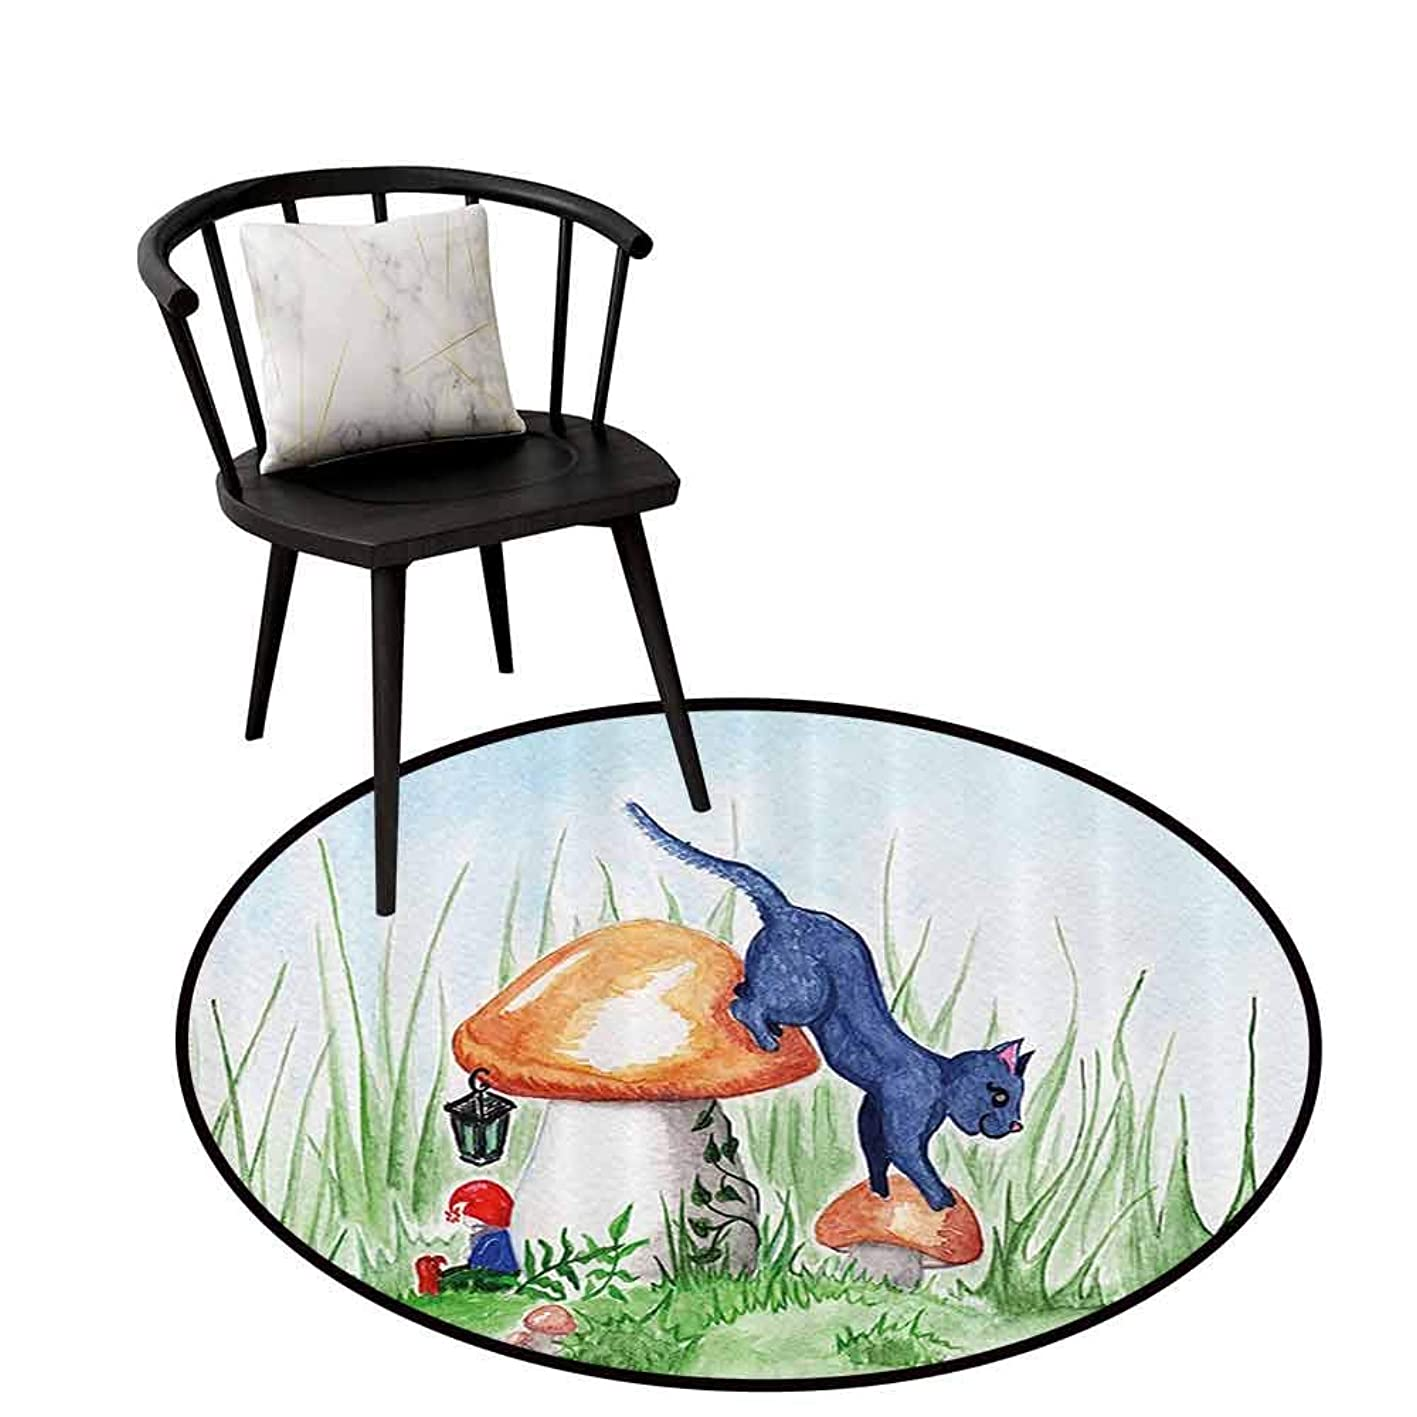 Non-Slip Round Rug Animal Decor Will not Touch The Floor Directly Little Cartoon Cat Black in a Mushroom Garden with Leaves and Flowers Art Multicolor D35(90cm) bhzsofimect400